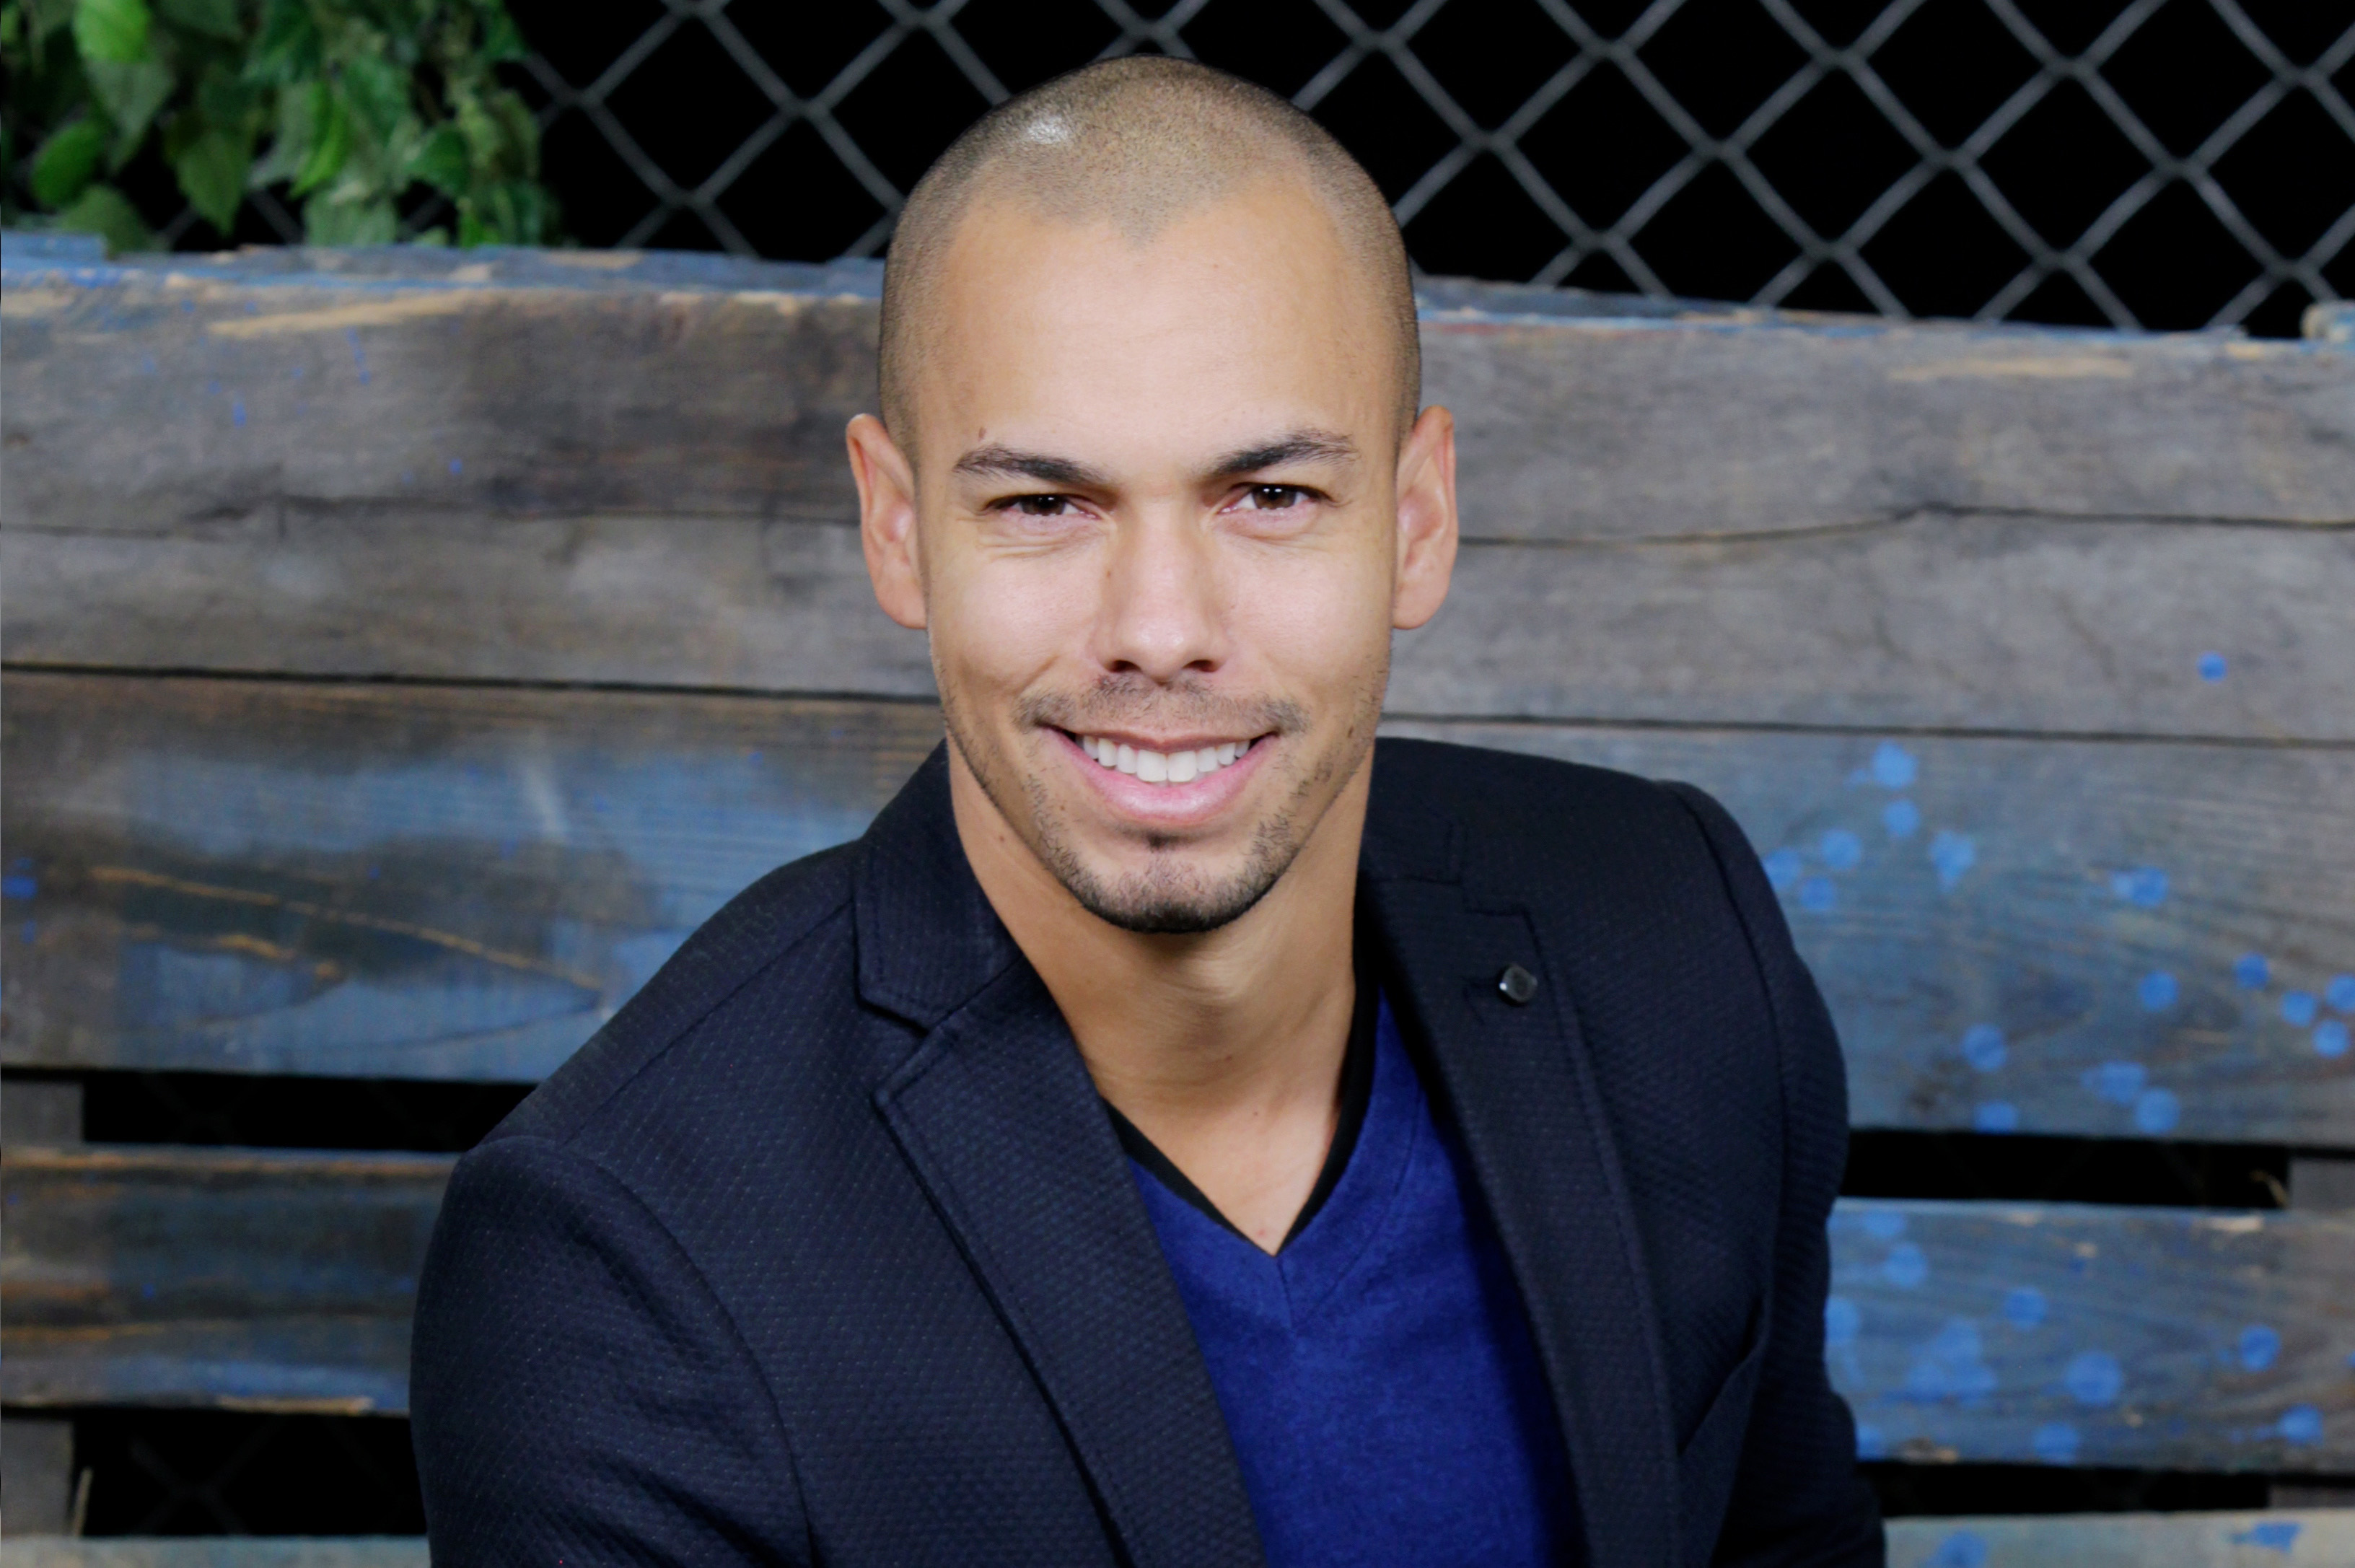 "Bryton James ""The Young and the Restless"" Set Shoot with Bryton James, Mishael Morgan, Kristoff St John CBS television City Los Angeles 12/16/14 © John Paschal/jpistudios.com 310-657-9661"